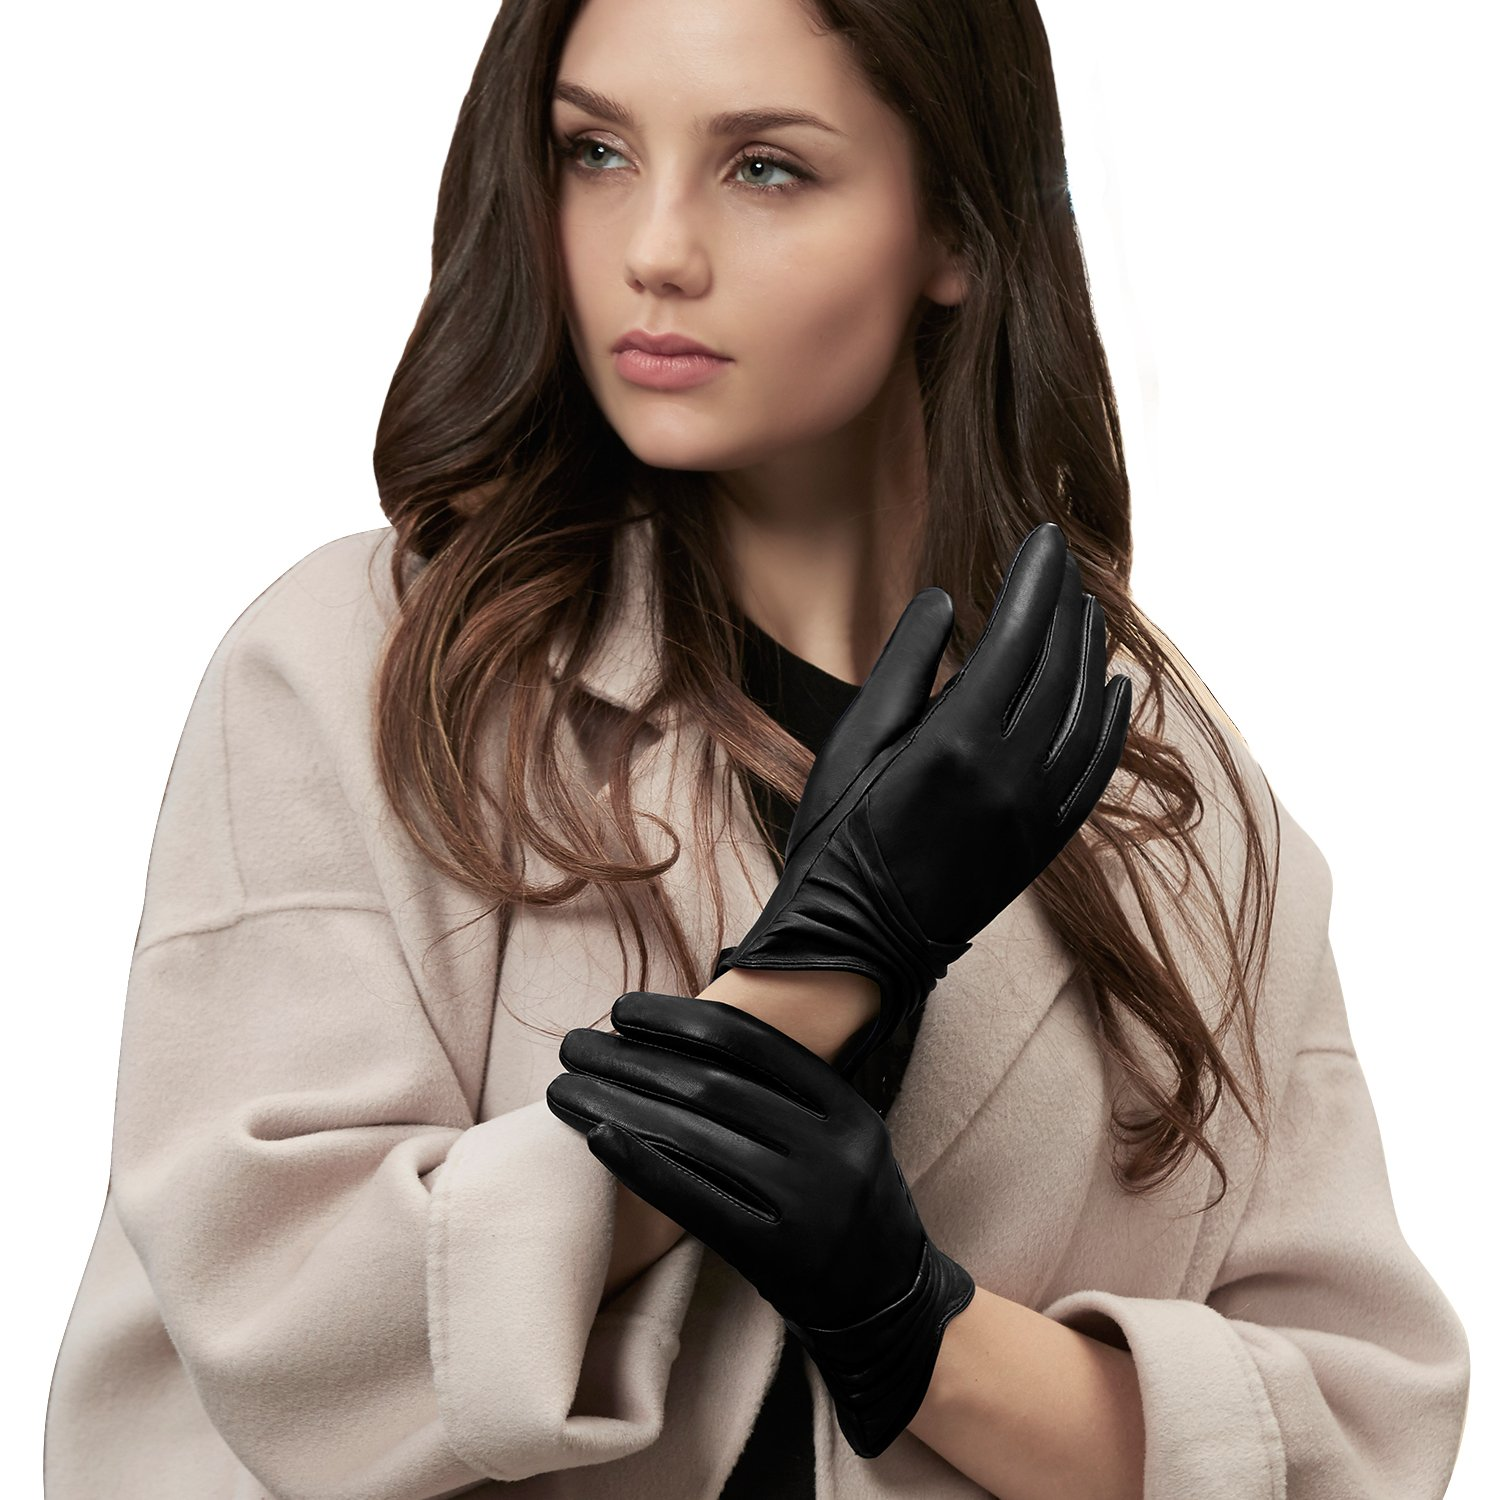 5d083f485c9ab GSG Womens Warm Leather Gloves Touchscreen Driving Fashion Ladies Gloves  Pleat Spain Nappa at Amazon Women s Clothing store